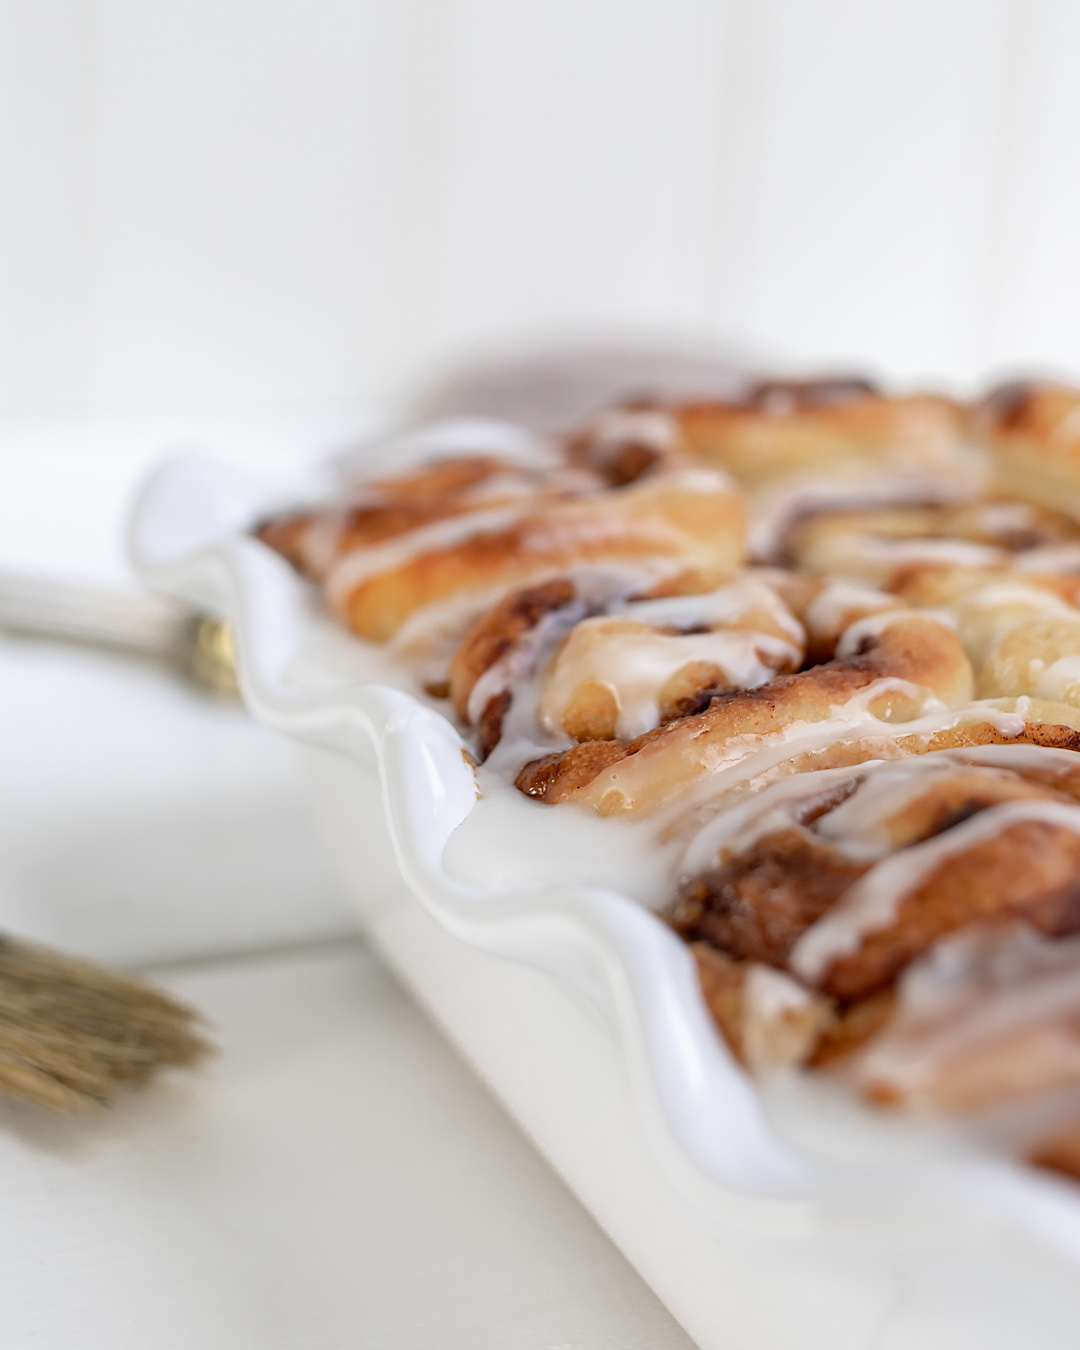 Sharing my favourite Sunday Morning Cinnamon Rolls Recipe today! This recipe happens to be plant-based, but feel free to use whatever non-plant-based substitutions you like instead.